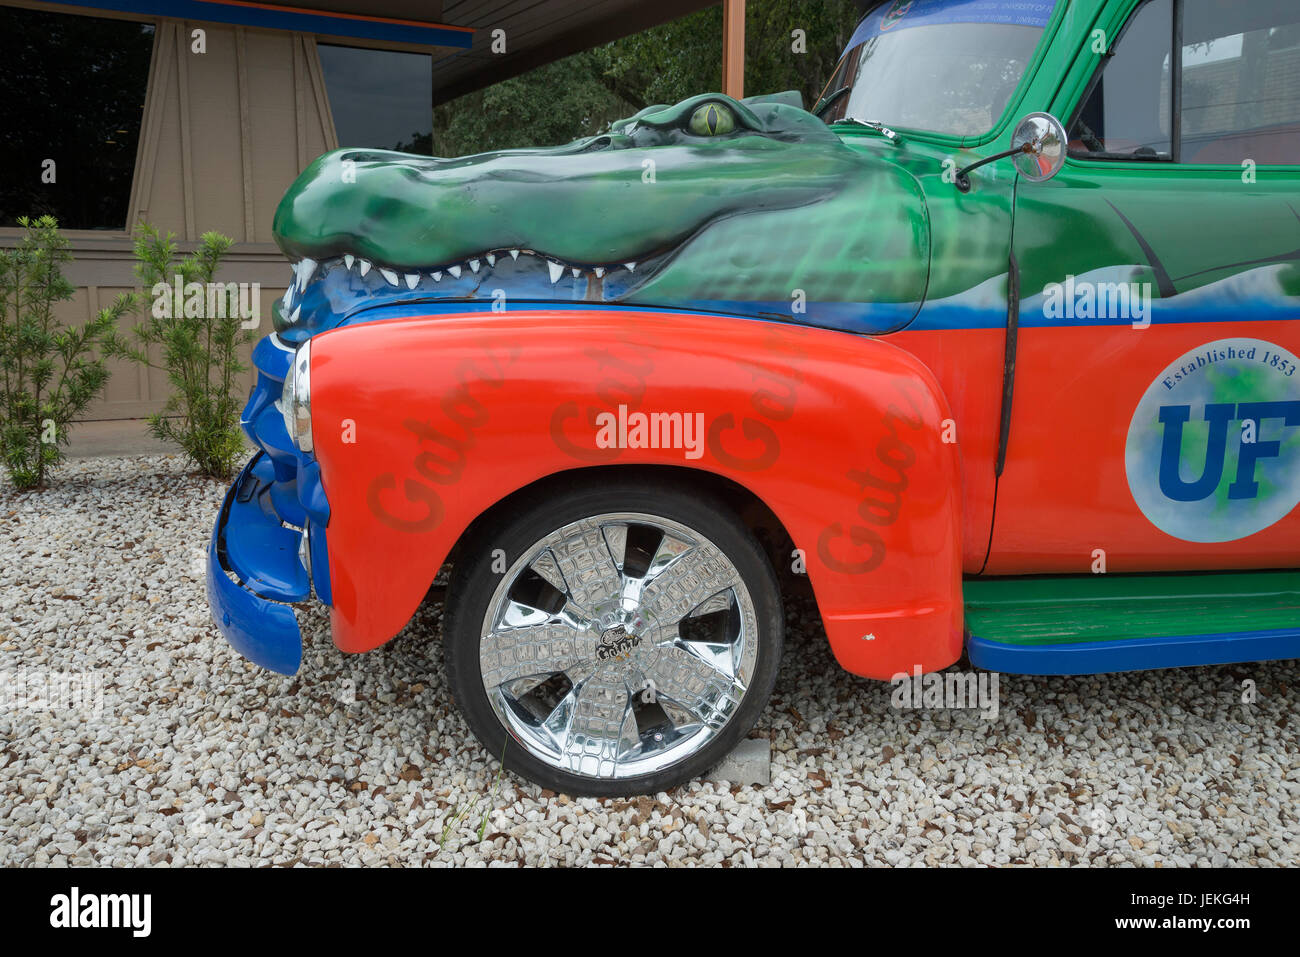 Gator Truck near the University of Florida in Gainesville, Florida. - Stock Image